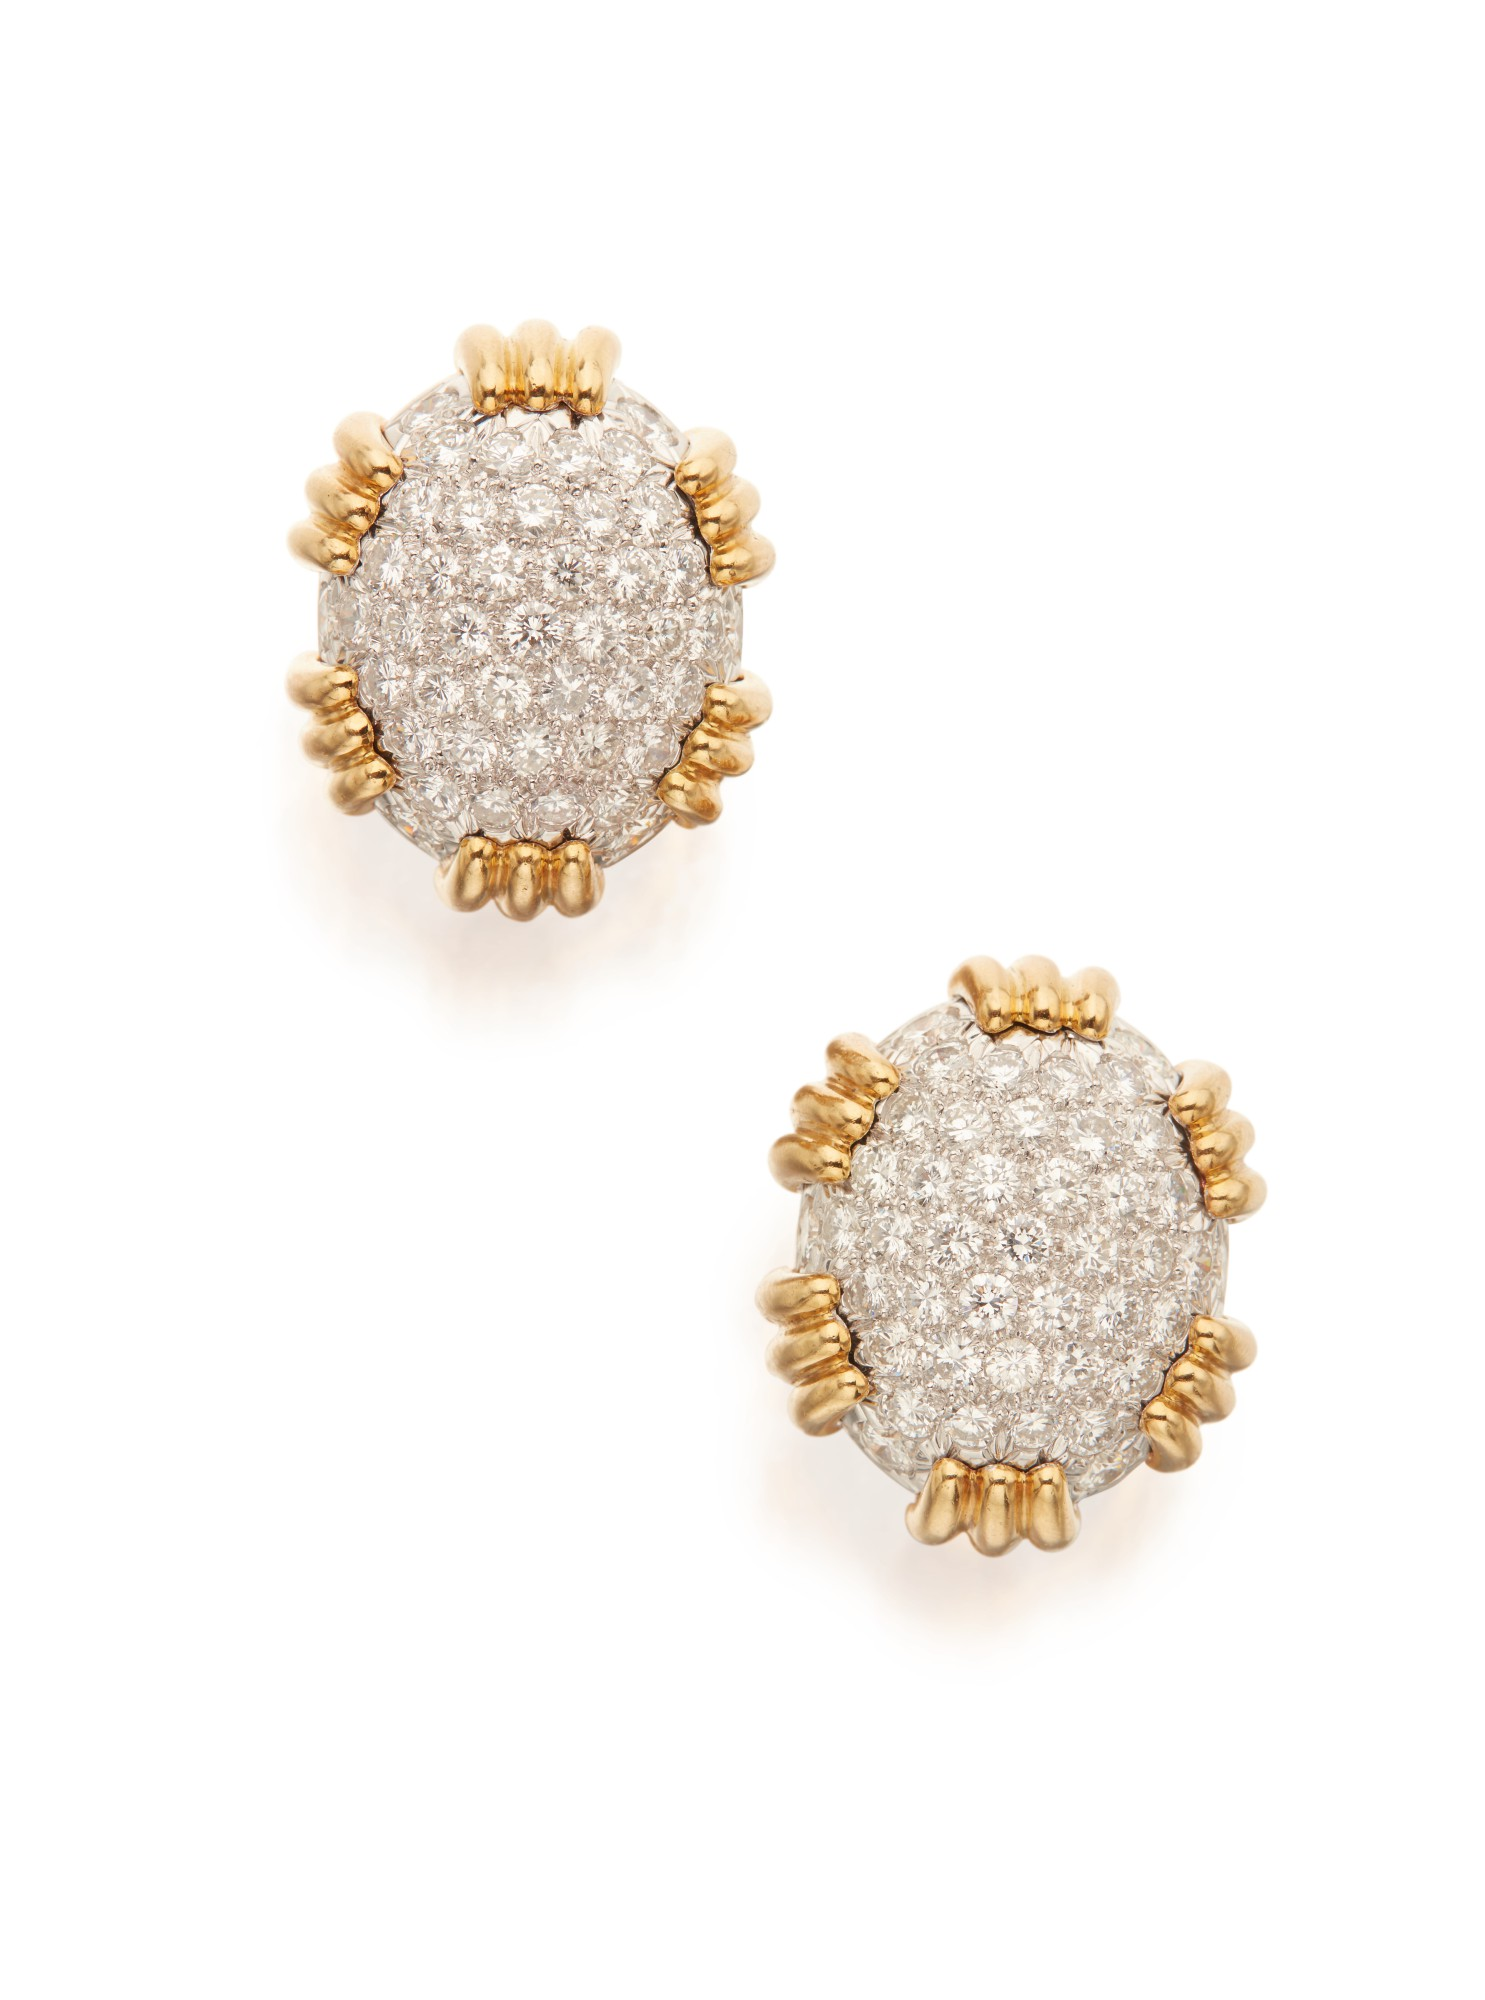 PAIR OF GOLD AND DIAMOND EARCLIPS, DAVID WEBB